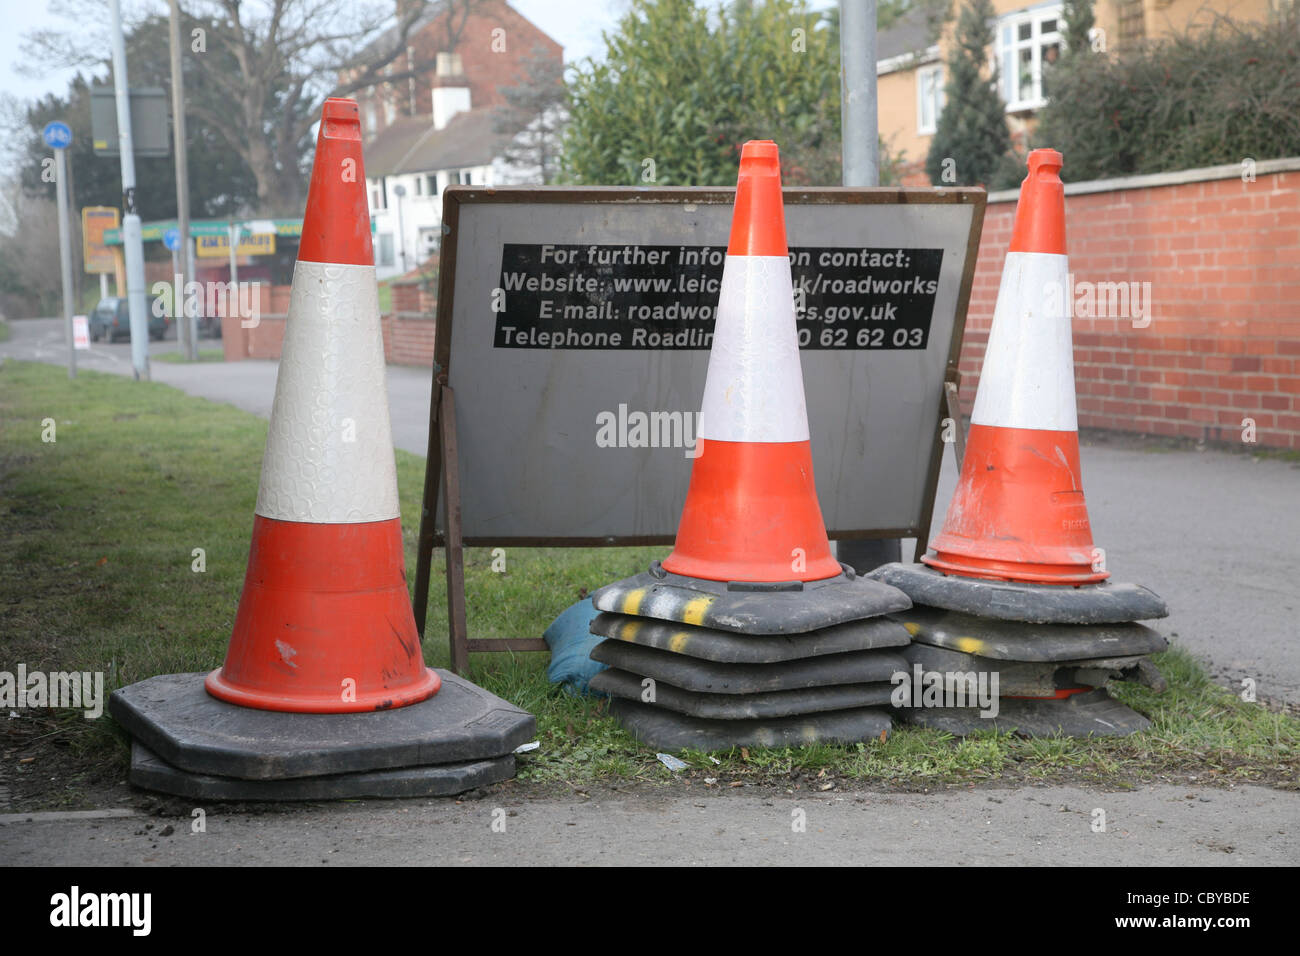 Stacked traffic cones at roadworks - Stock Image